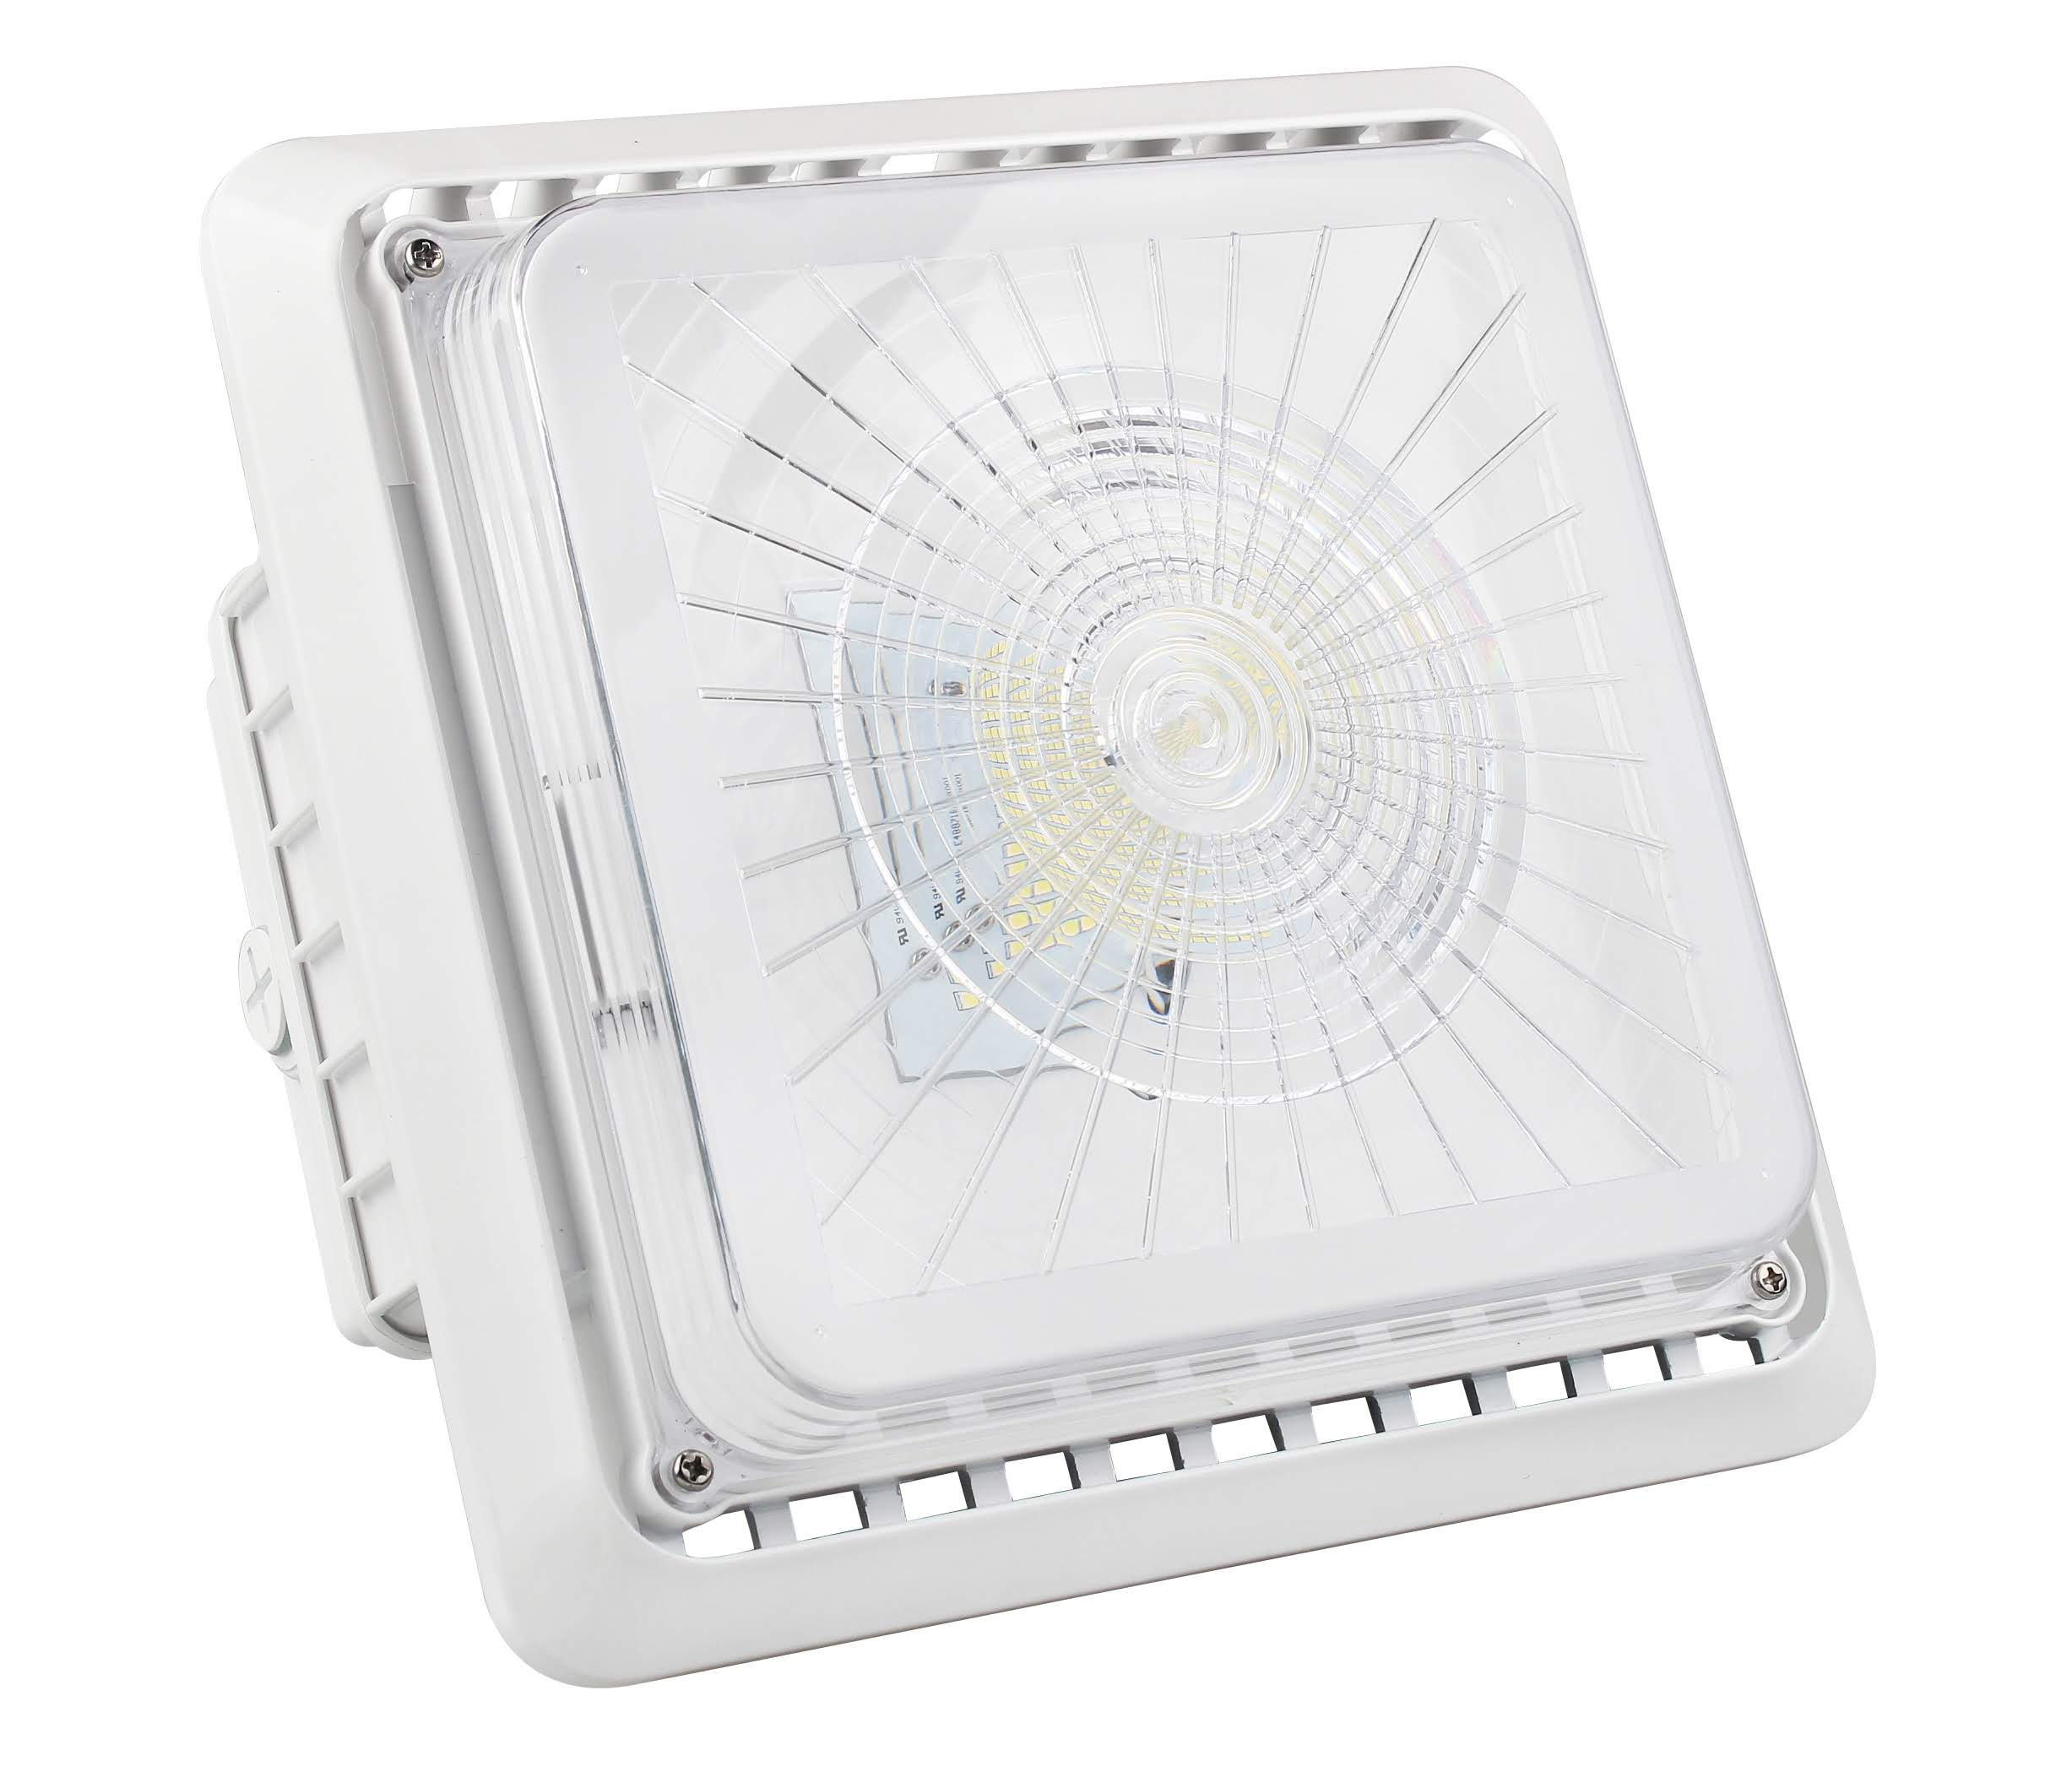 LED GARAGE CANOPY LIGHT 75W - 8,768 LUMENS UL & DLC PREMIUM - 5 YEAR WARRANTY